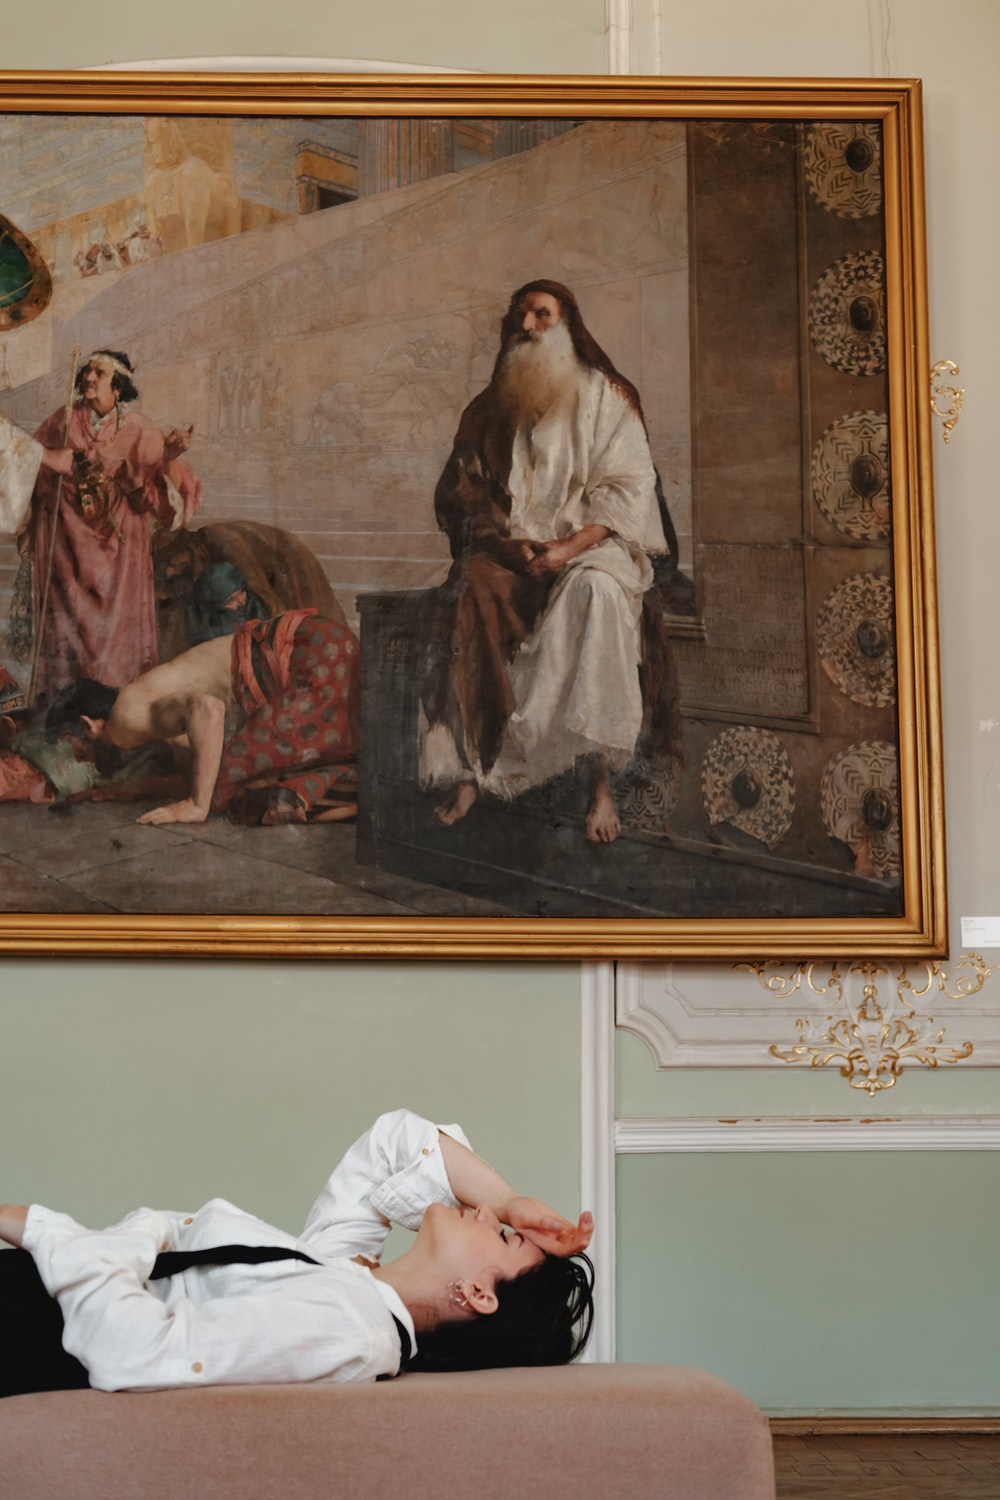 woman in white robe sitting on bed painting